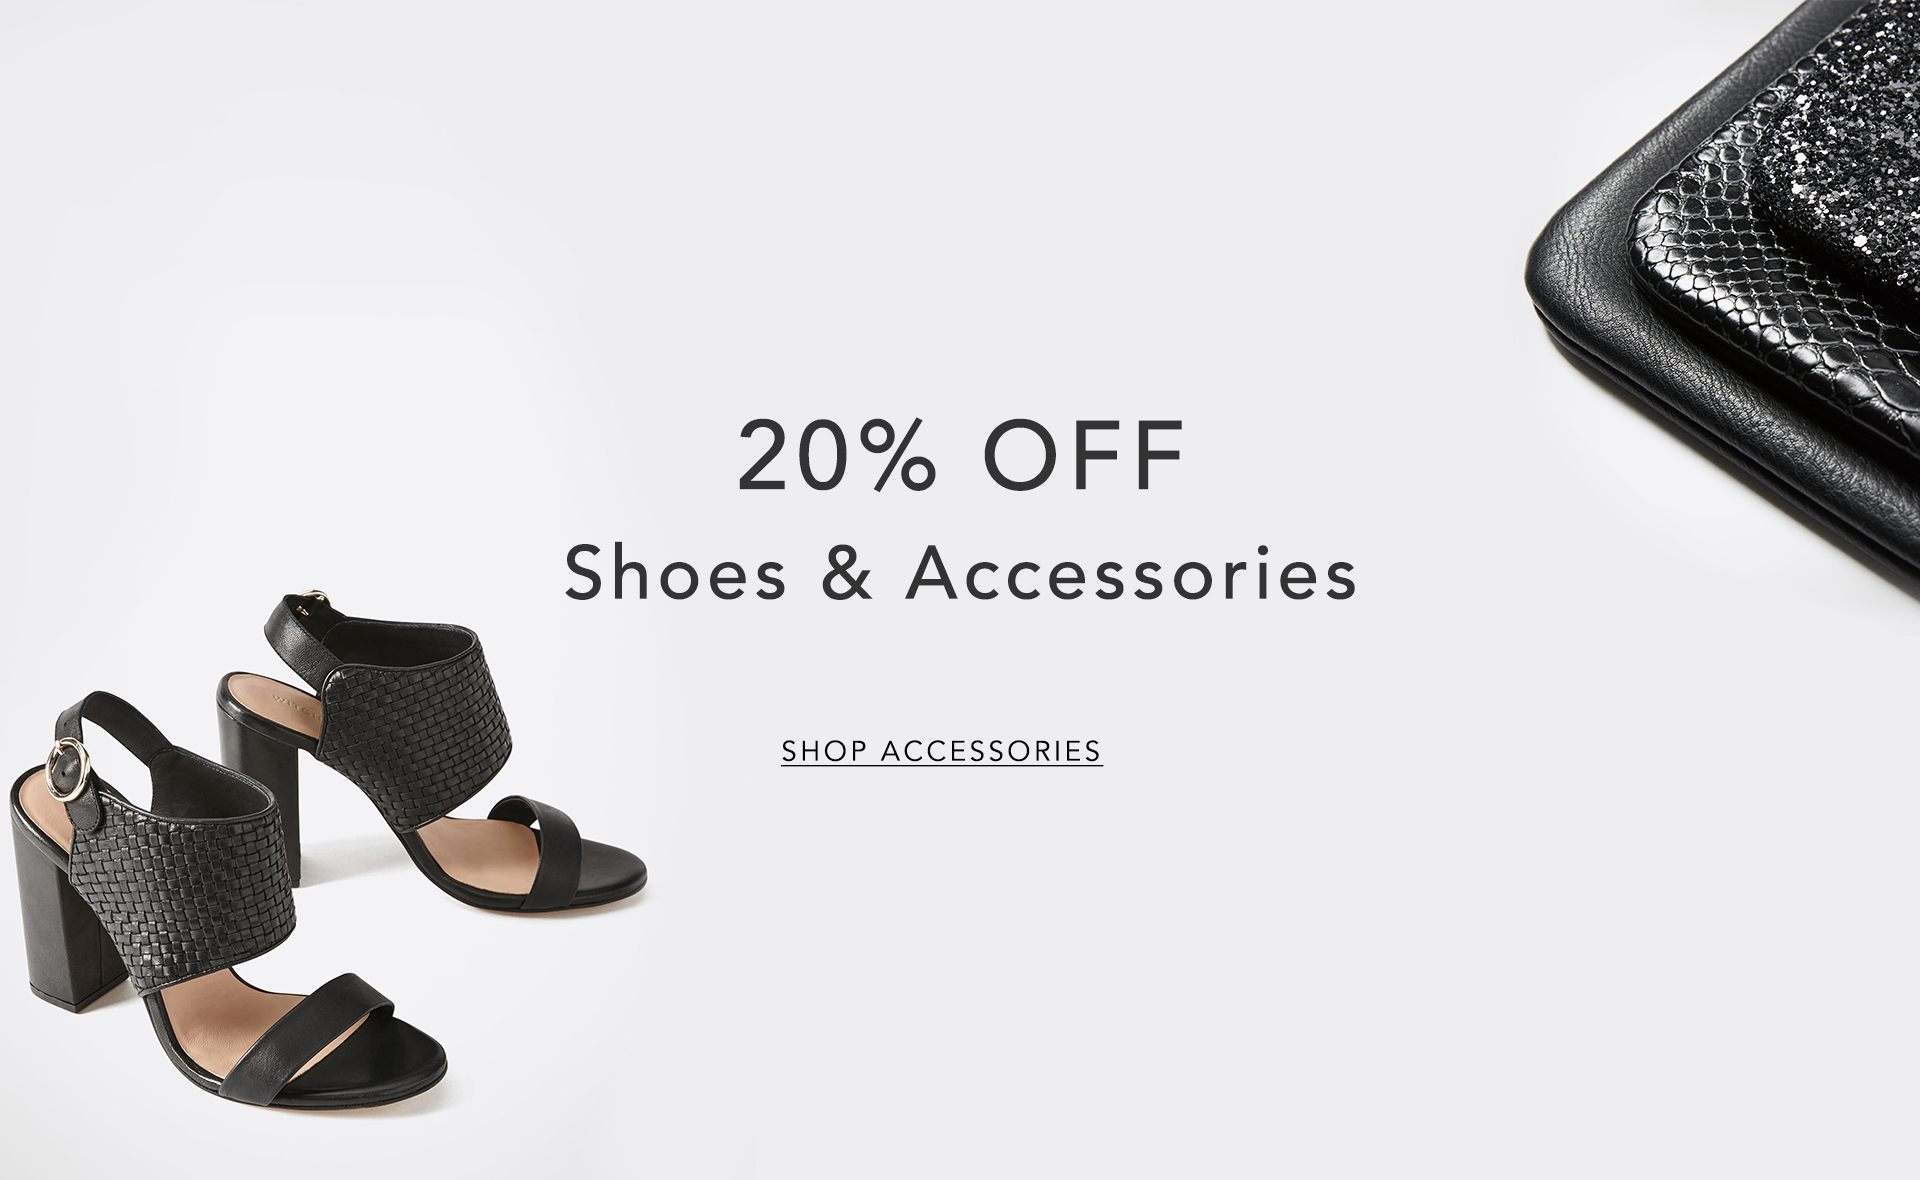 20% Off Shoes & Accessories